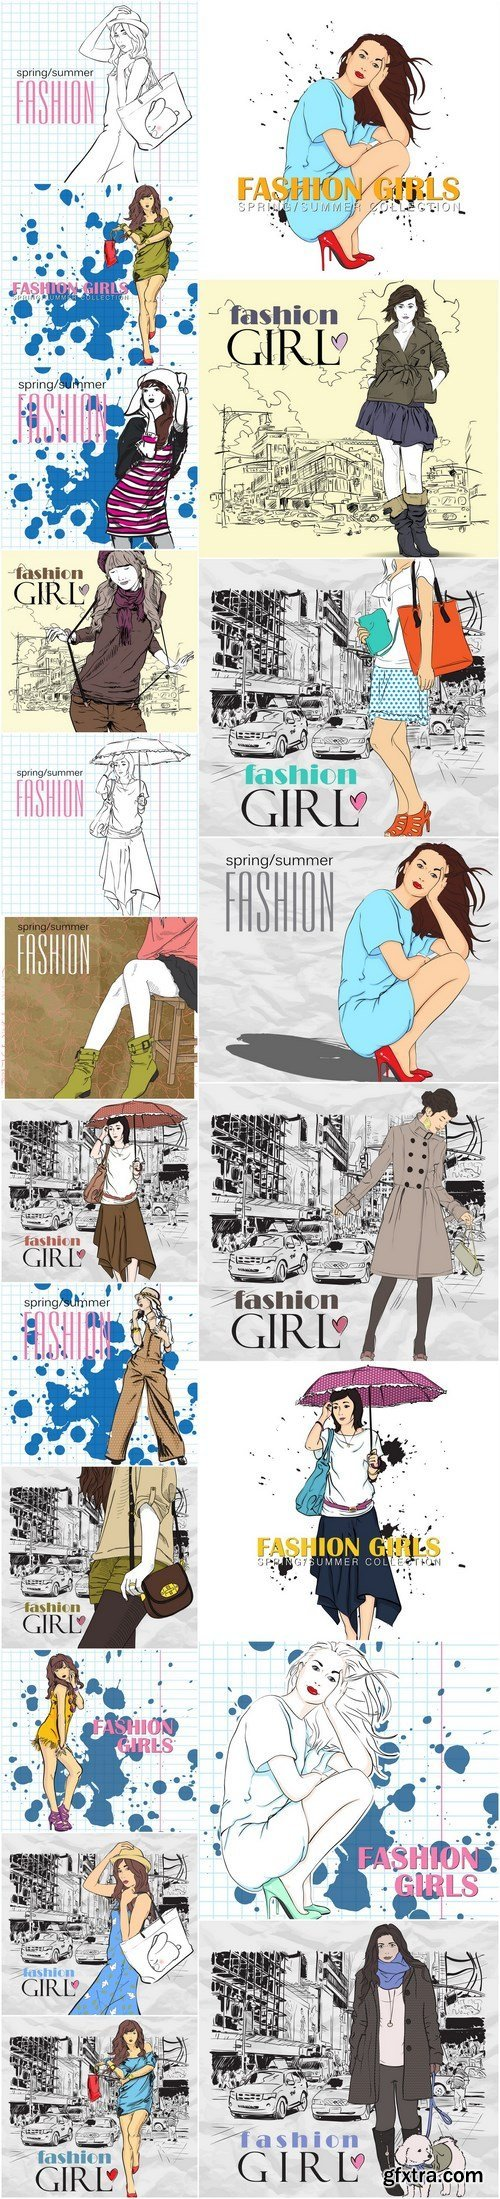 Female Fashion and Style - 20xEPS